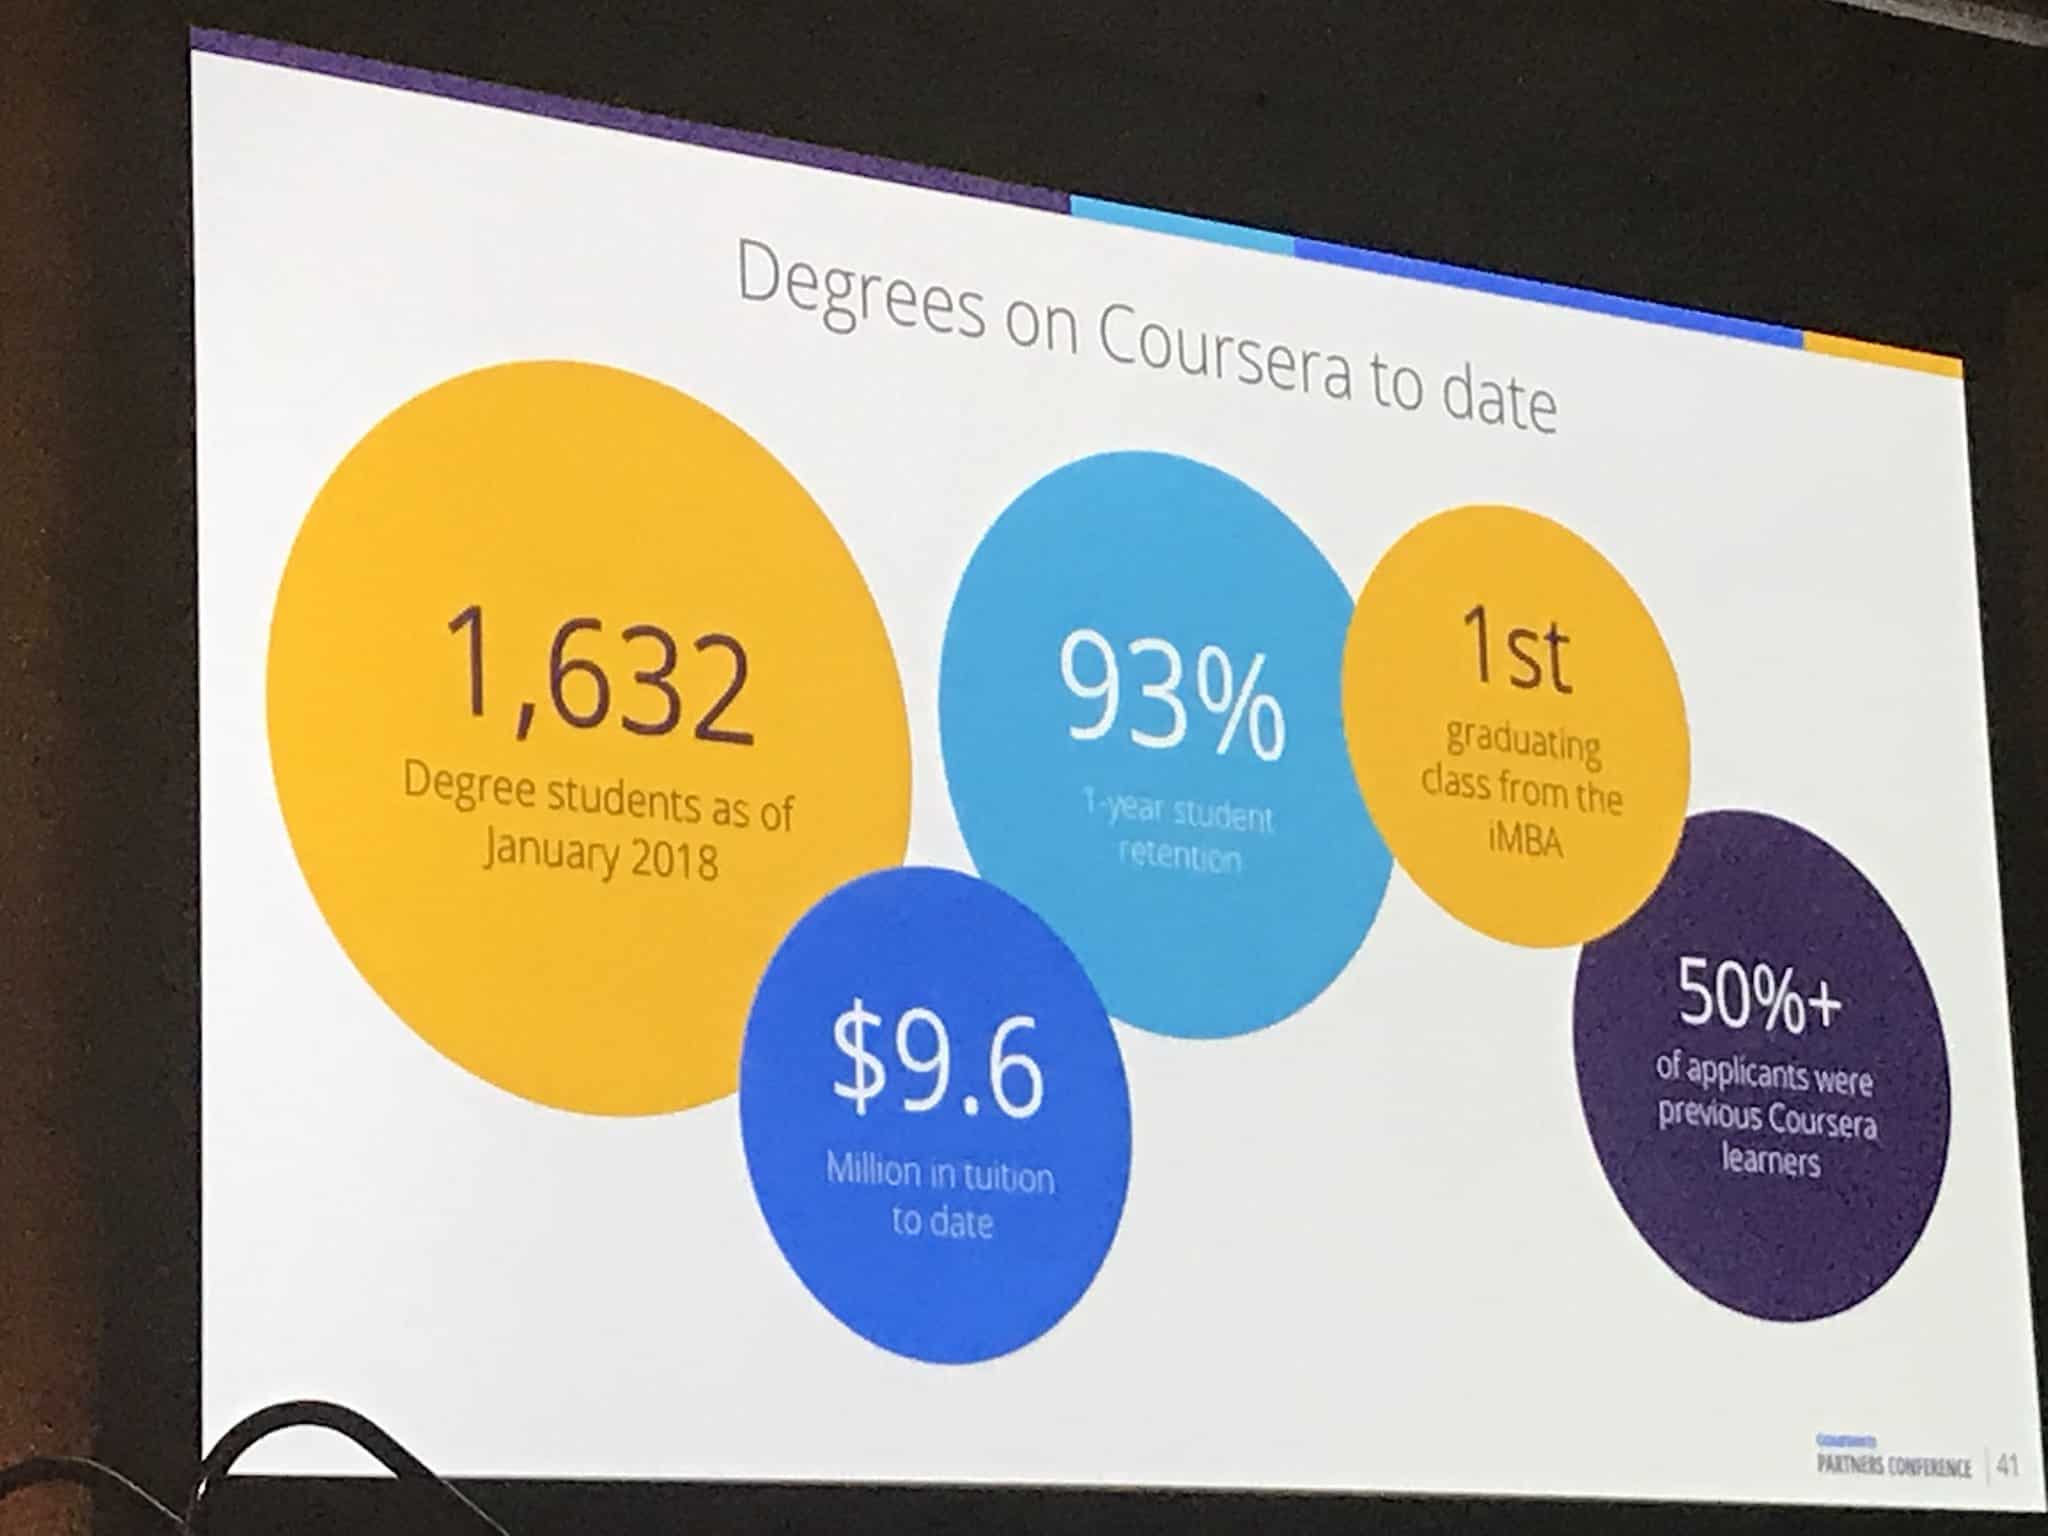 Coursera Online Degrees Revenue